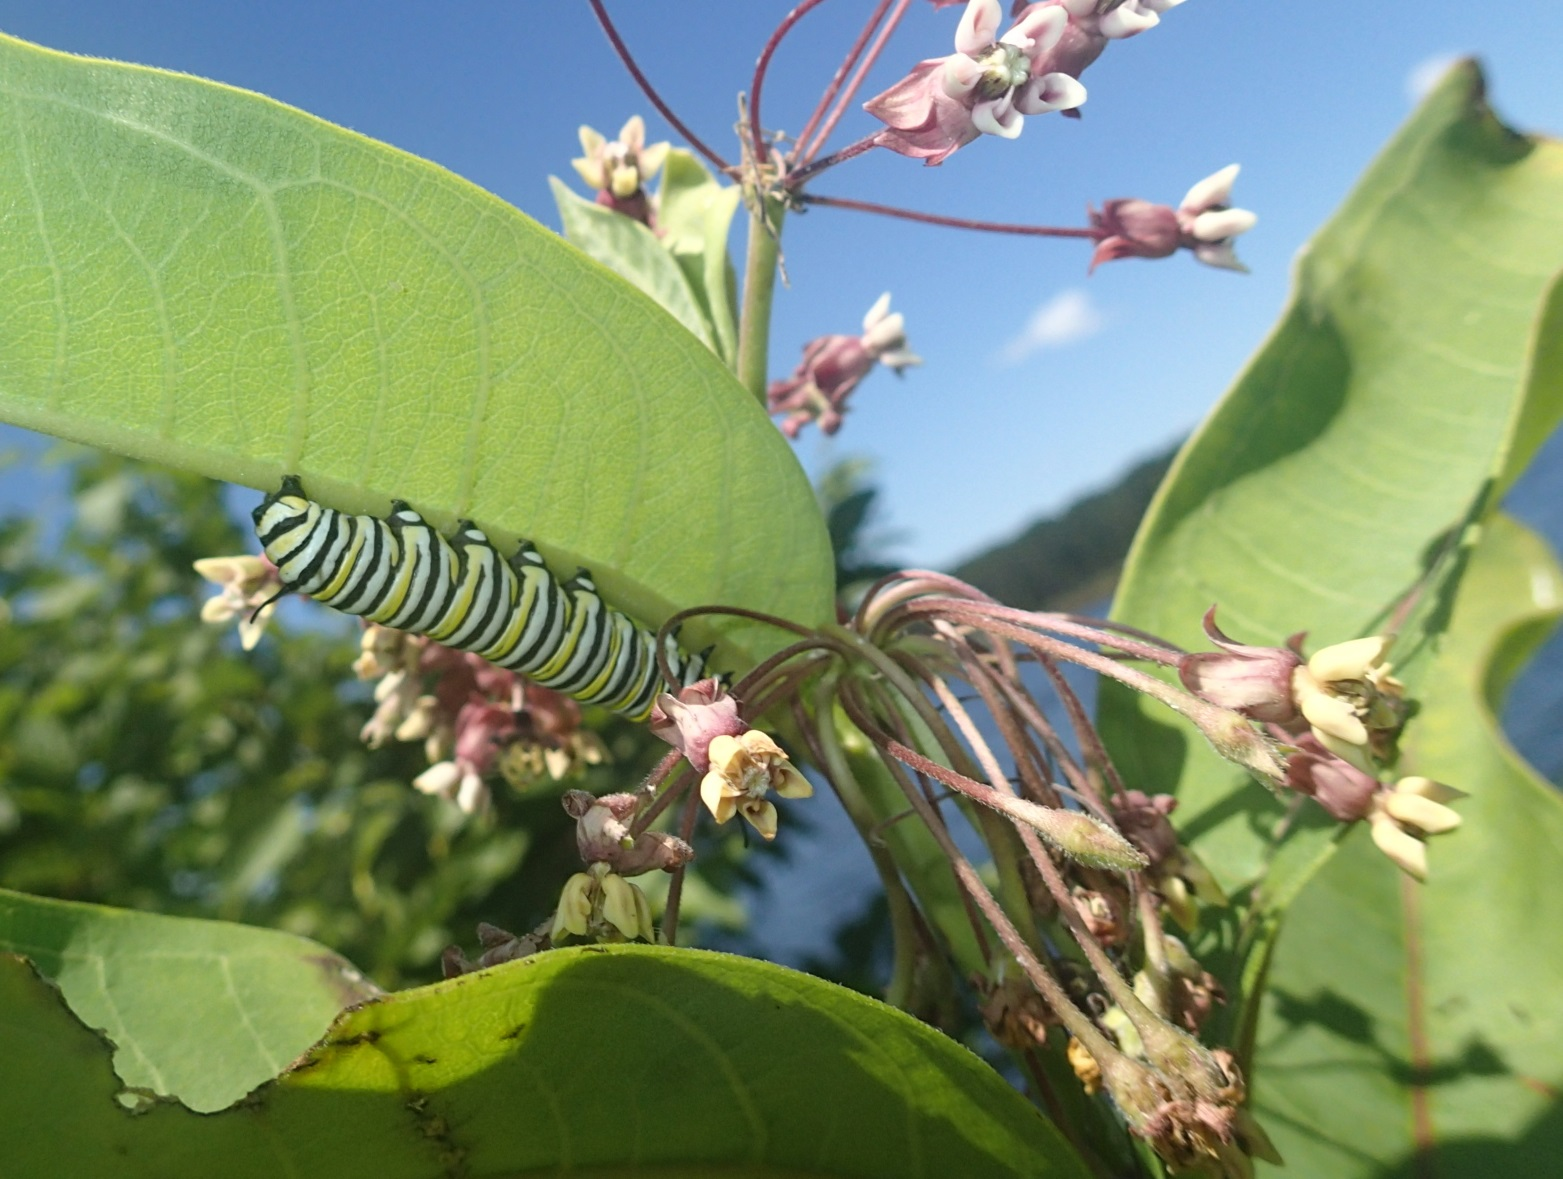 A monarch caterpillar feasting on the common milkweed plant.